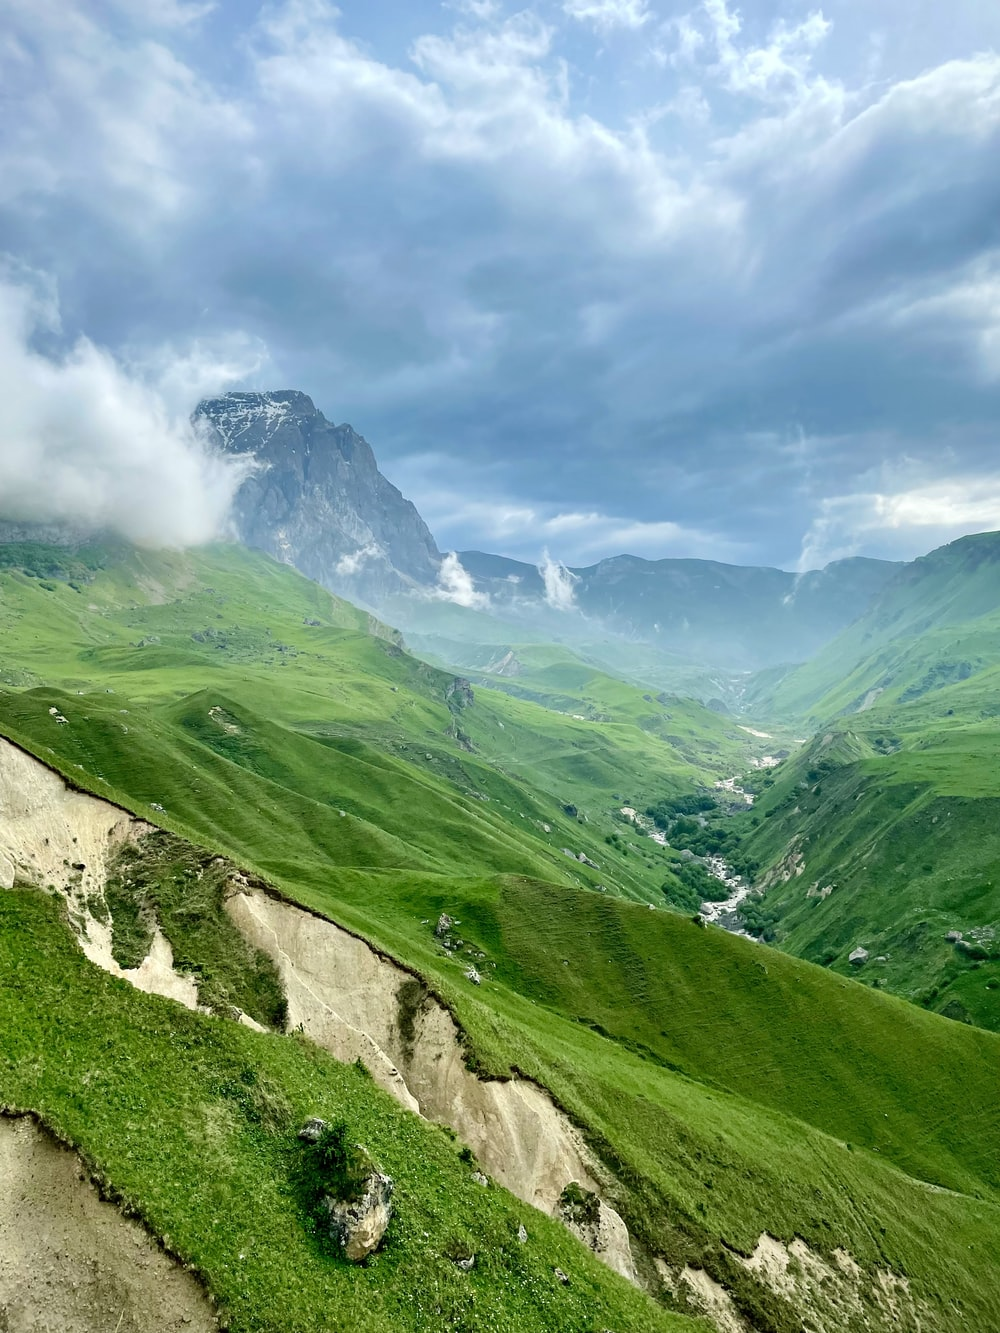 green grass covered mountain under cloudy sky during daytime